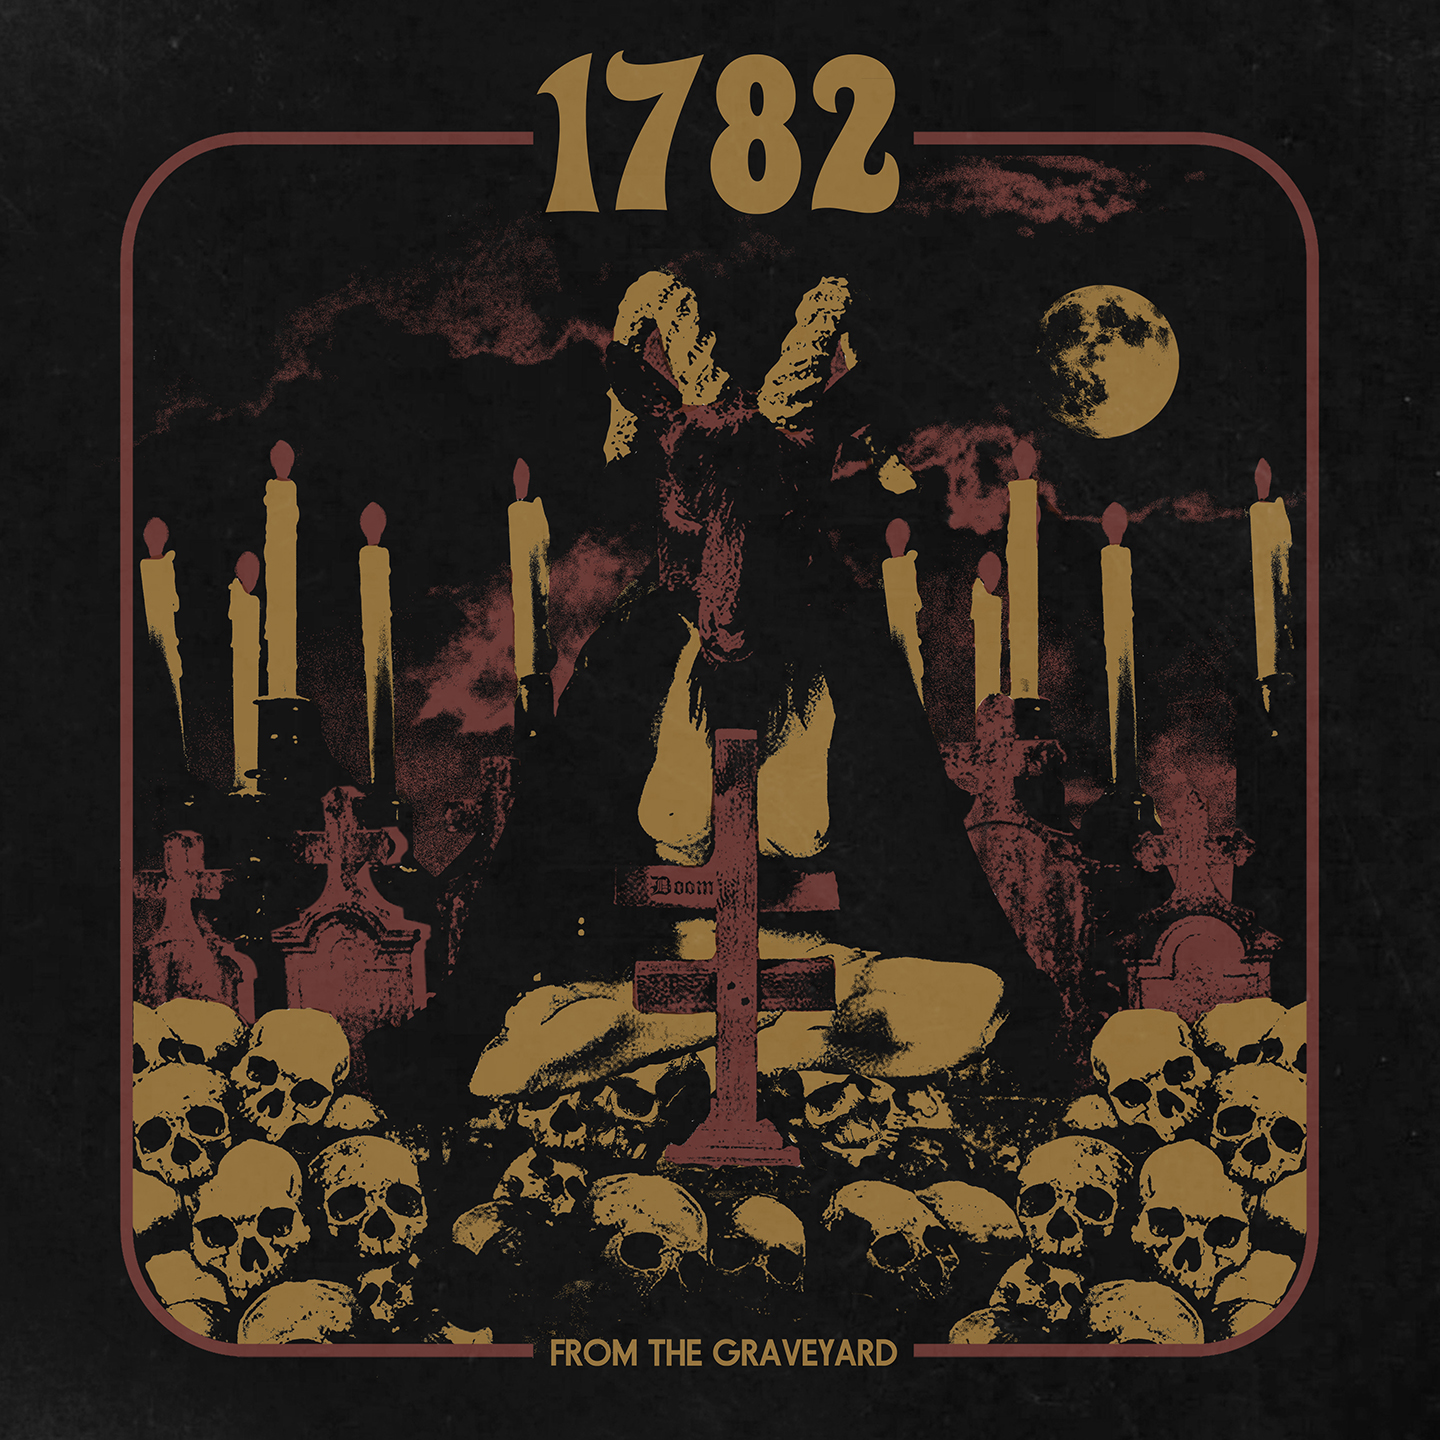 1782 from the graveyard